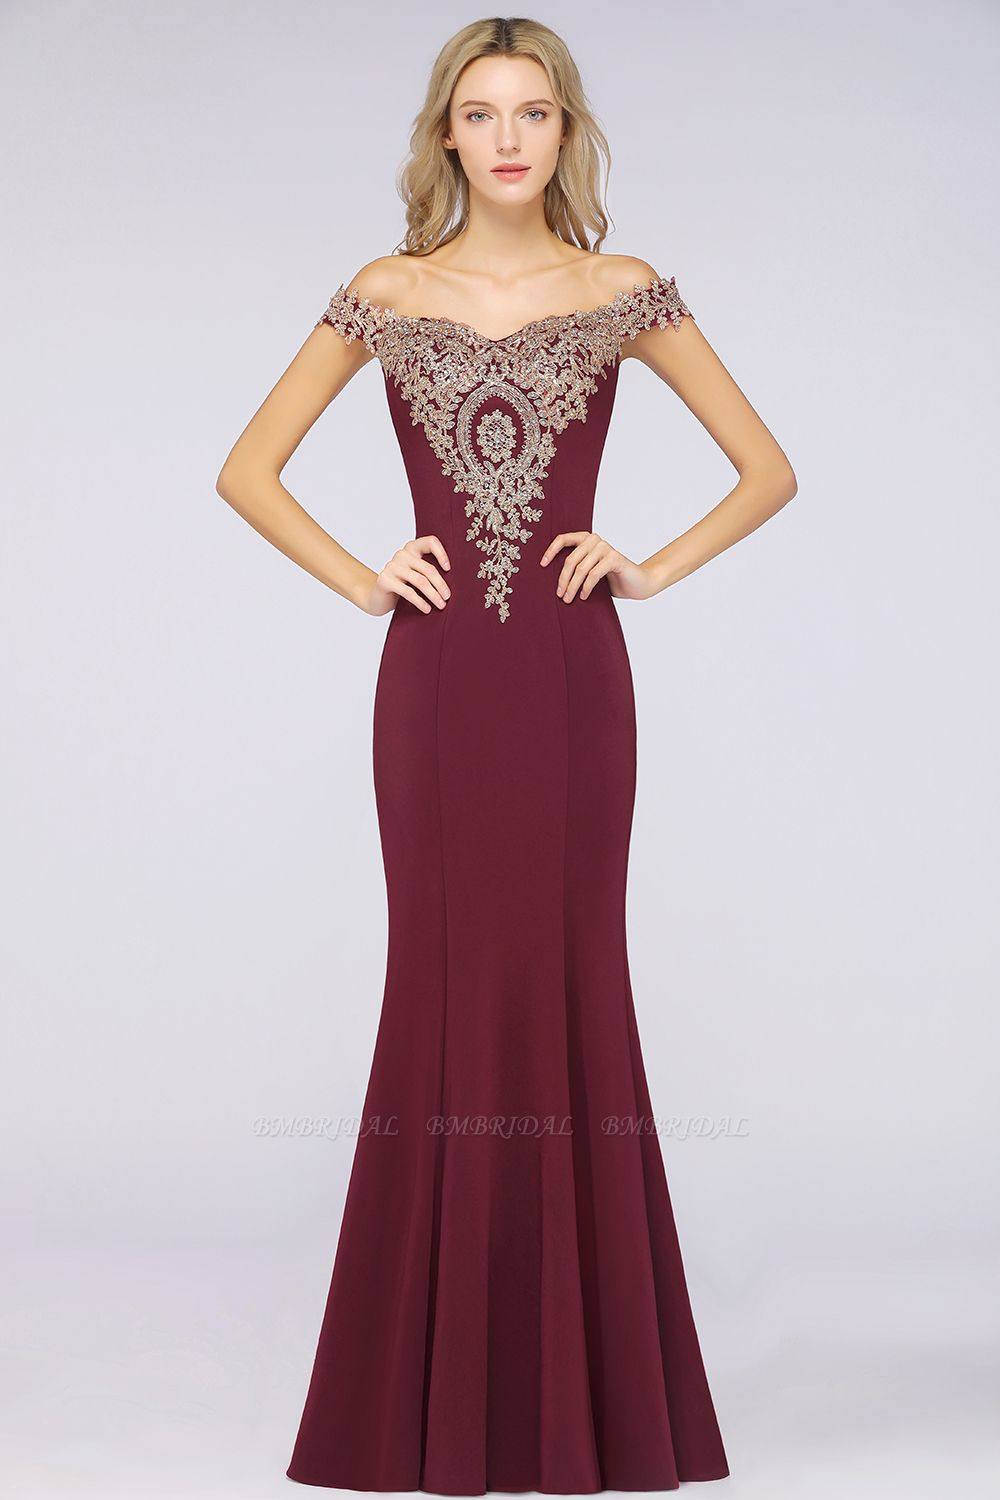 BMbridal Elegant Off-the-Shoulder Mermaid Prom Dress Long With Lace Appliques